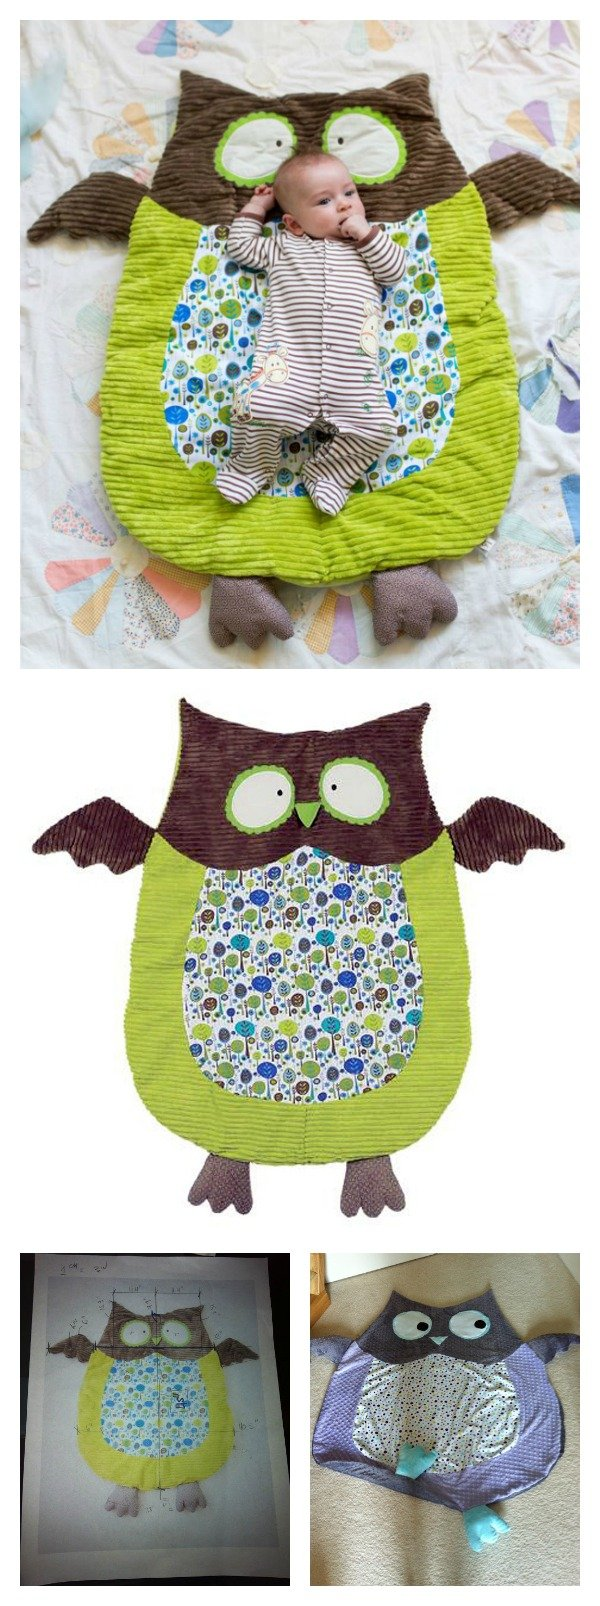 DIY Cute Owl Floor Play Mat